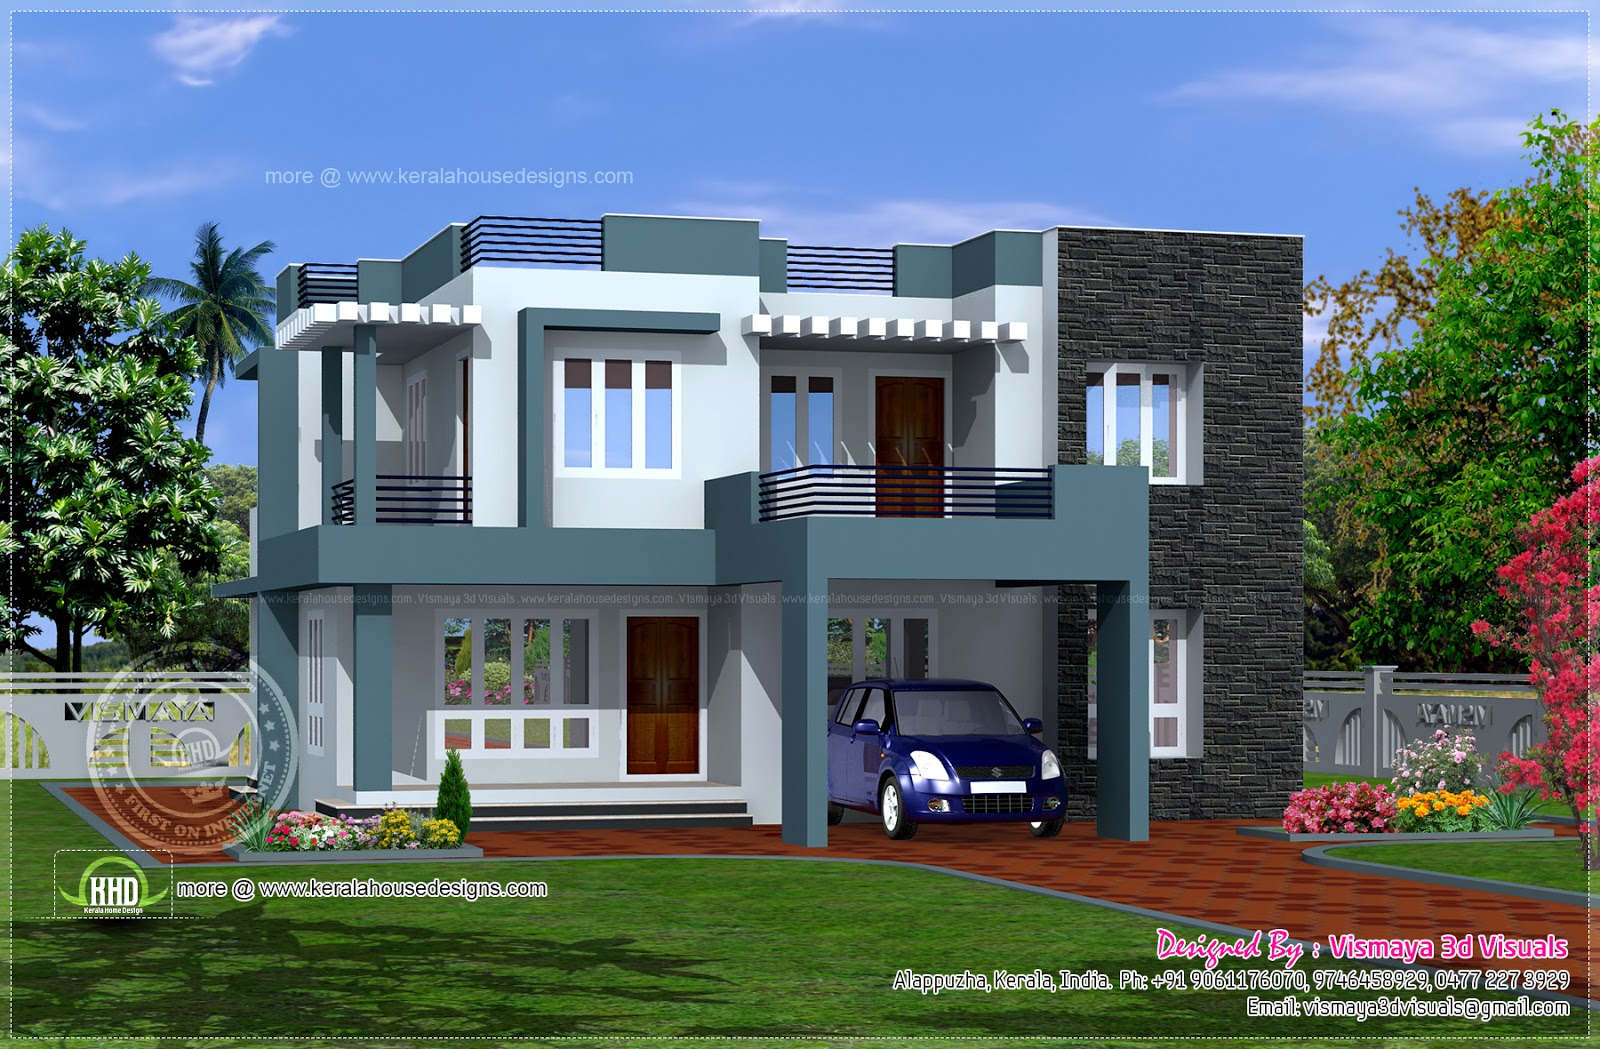 Simple contemporary style villa plan kerala home design Simple house model design